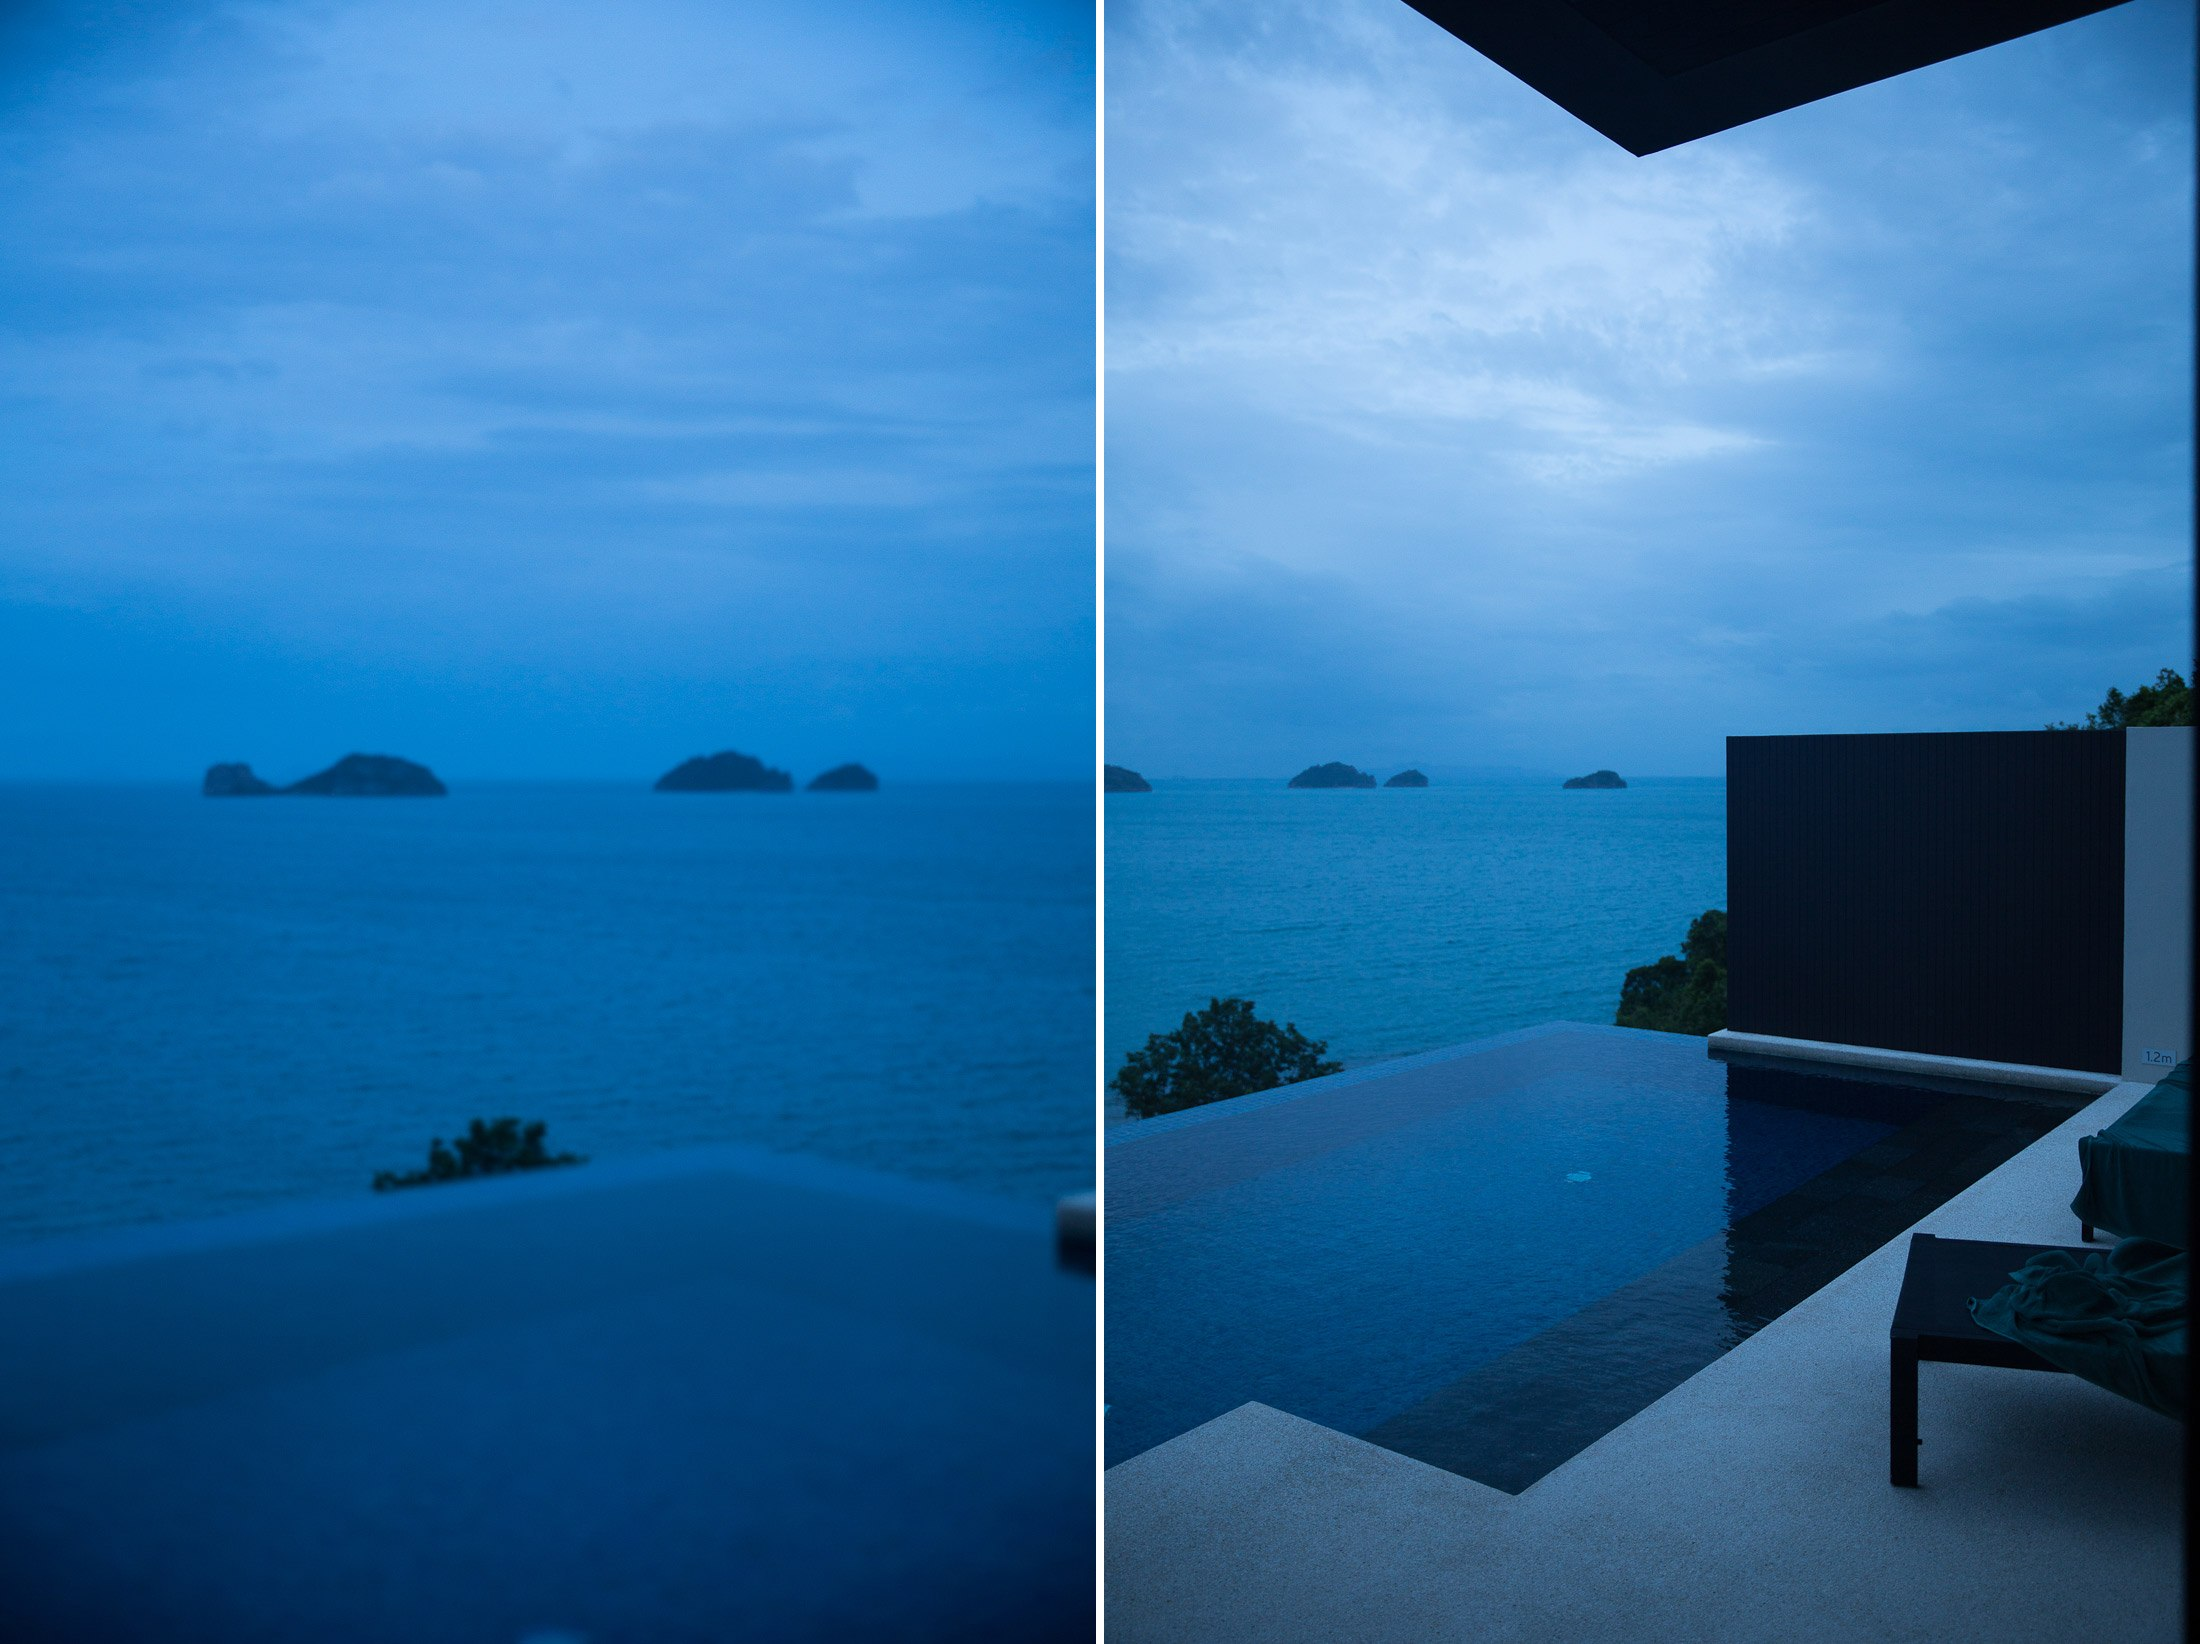 blue hour photography photograph thailand koh samui island conrad hotel infinity pool beach ocean chair islands sunrise shershegoes.com